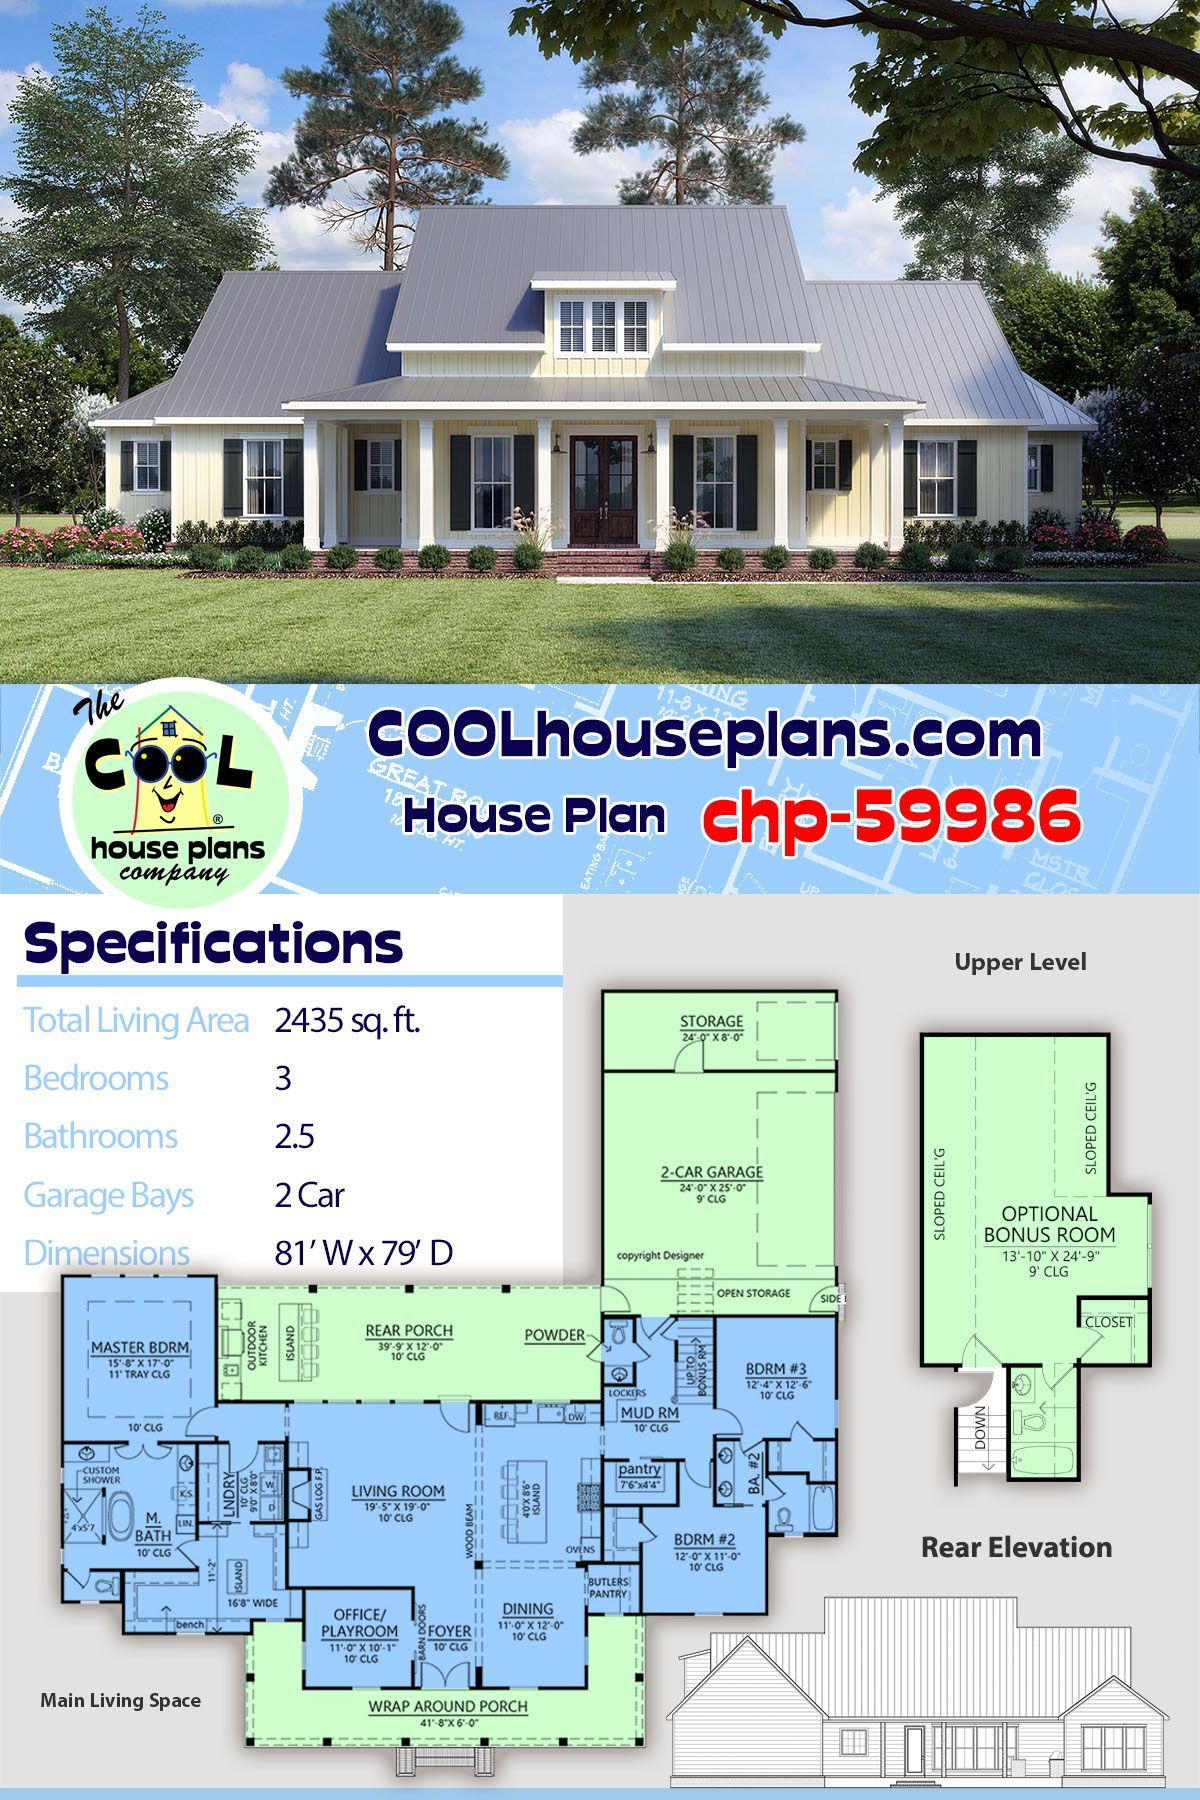 New Beautiful Modern Farmhouse Plan Chp 59986 At Cool House Plans With Amazing Floor Plans In 2020 Farmhouse Plans Best House Plans House Plans